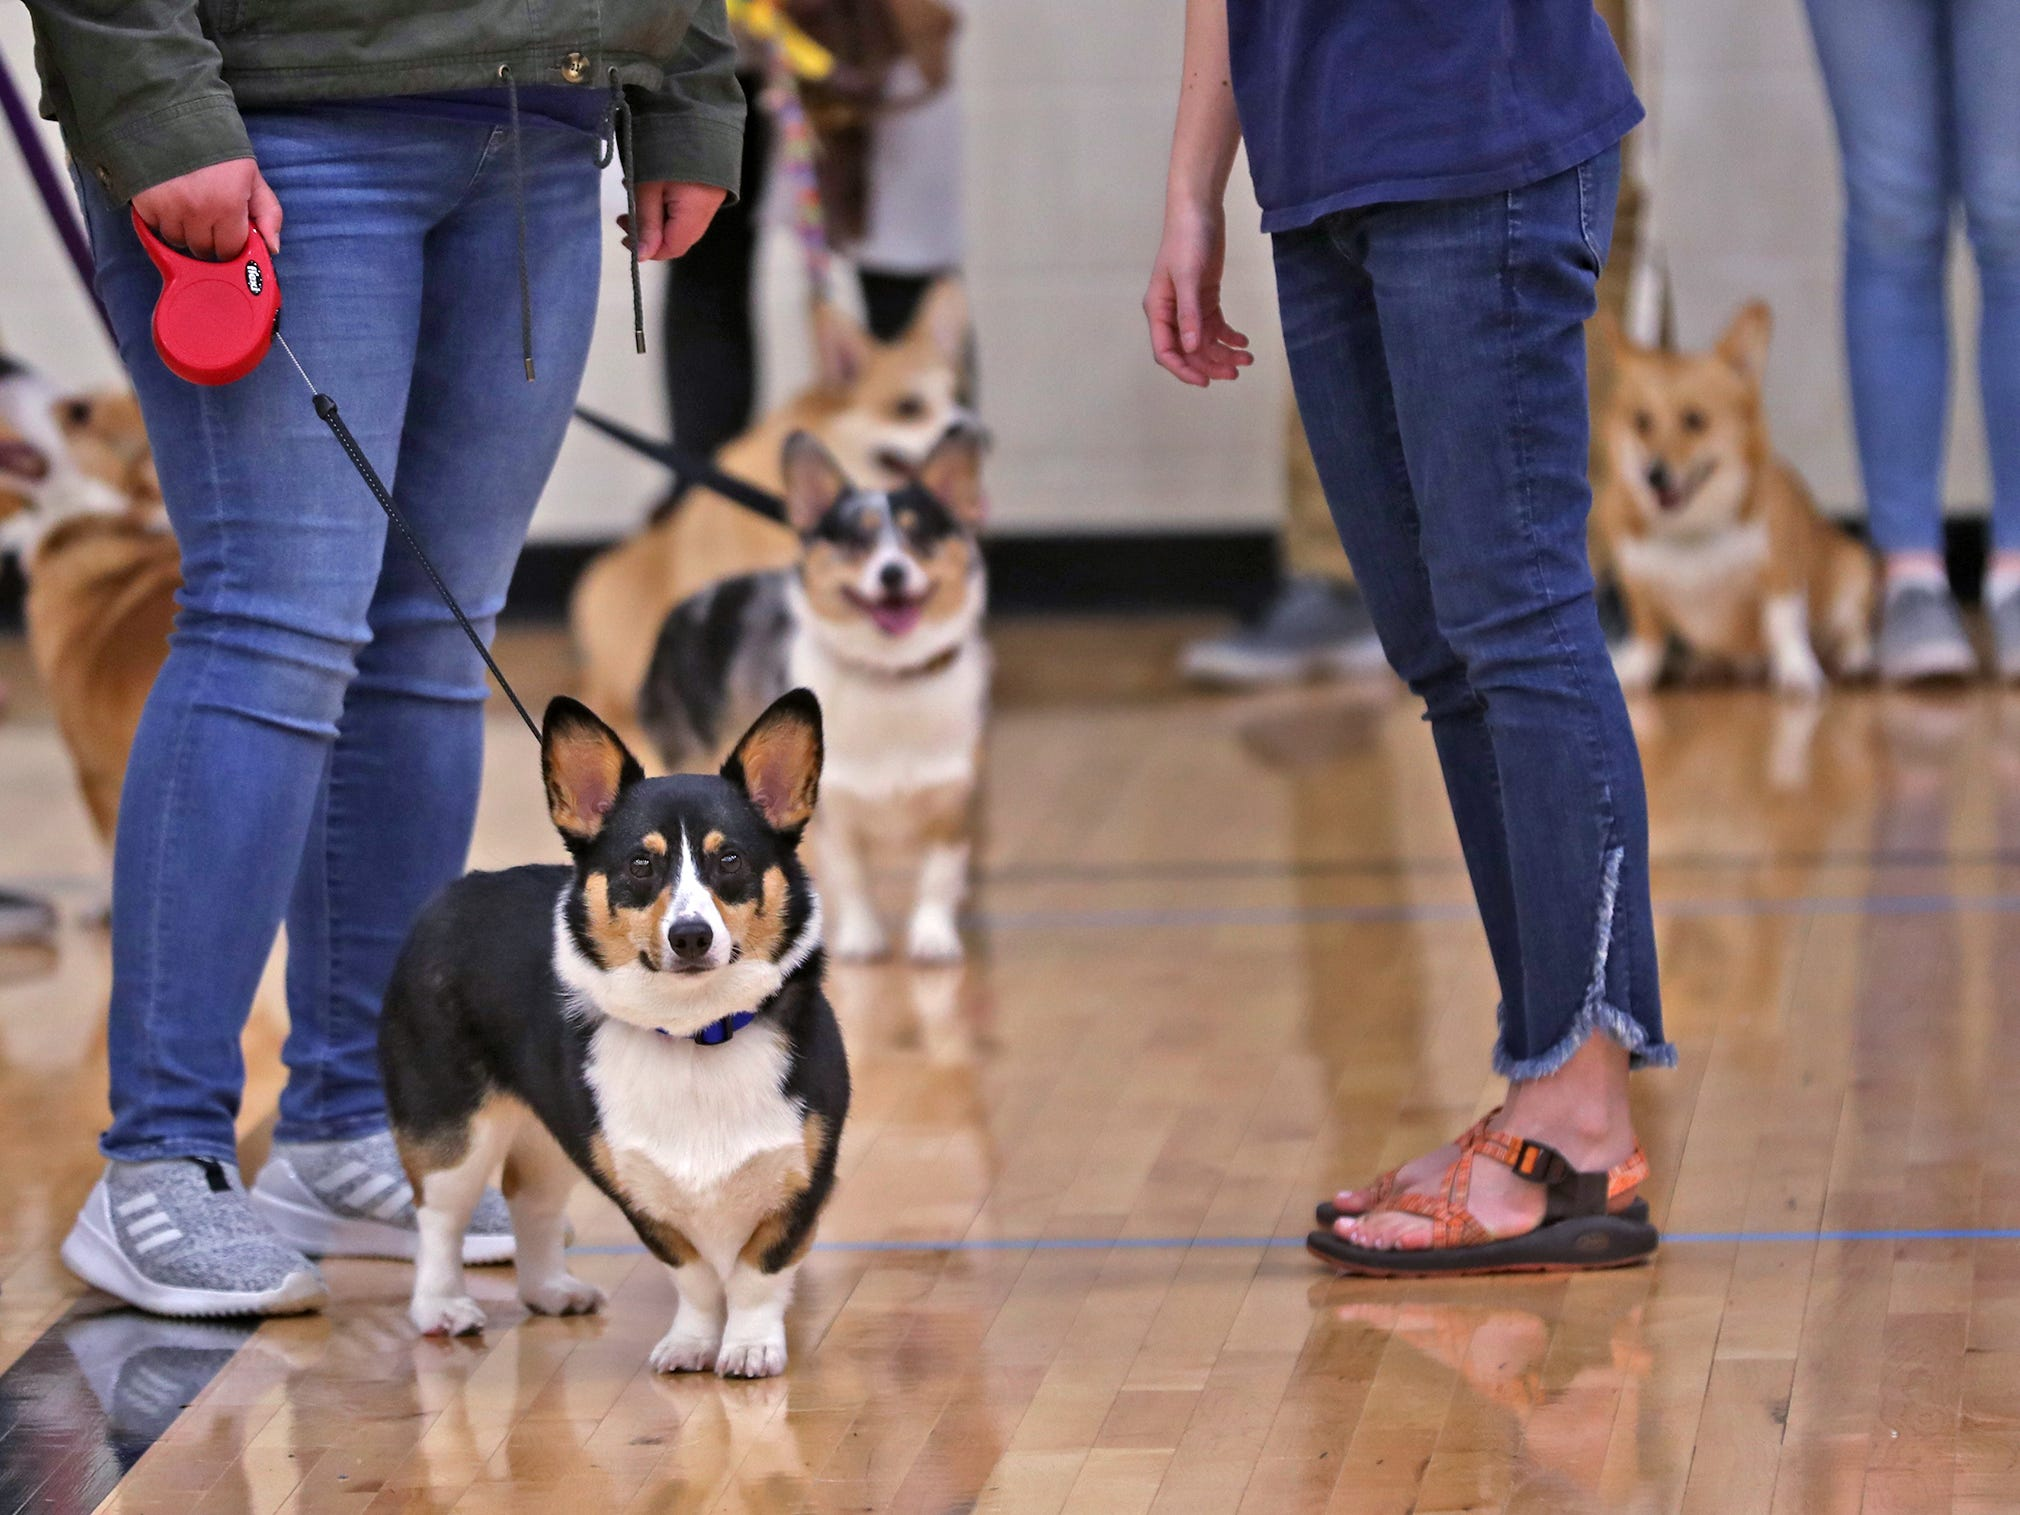 Corgis wait for the limbo contest at the Indianapolis Corgi Limbo & Costume Contest at IUPUI, Sunday, April 14, 2019.  The event benefits children orphaned by HIV/AIDS in eSwatini, Africa.  It is presented by the Give Hope, Fight Poverty IUPUI chapter.